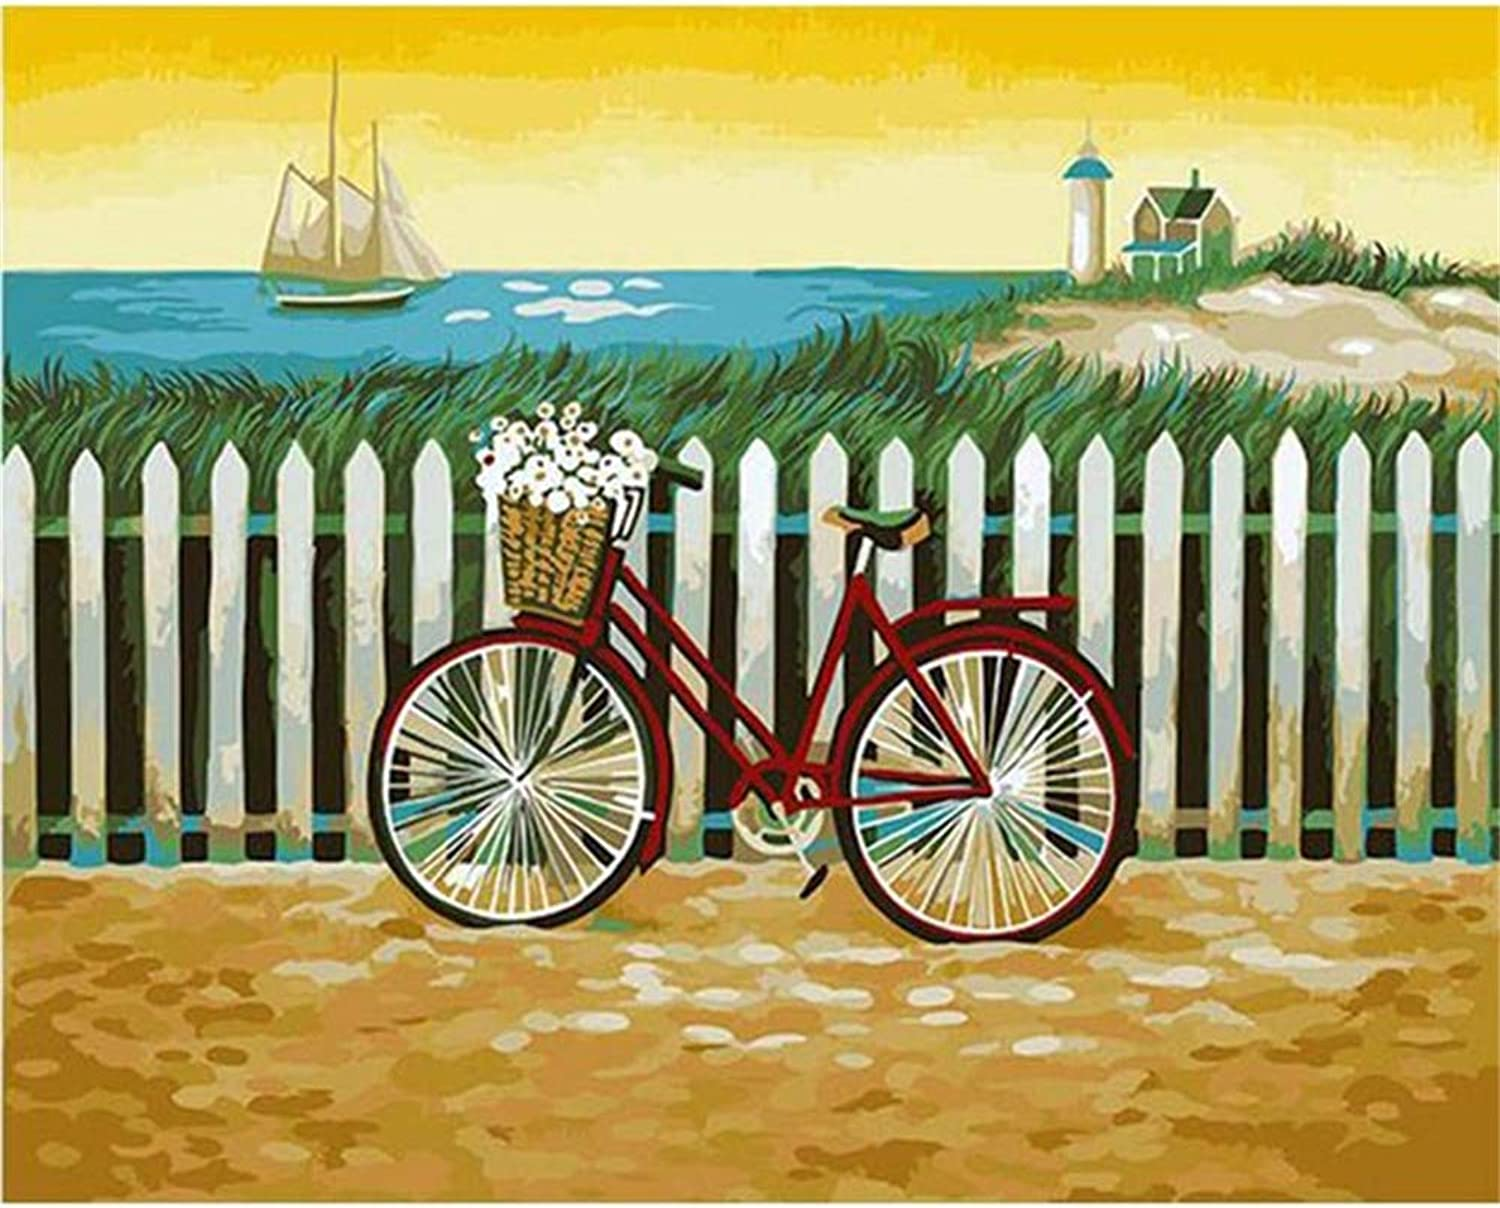 Jigsaw Puzzle 1000 Piece Bicycle Classic Puzzle DIY Kit Wooden Toy Unique Gift Home Decor